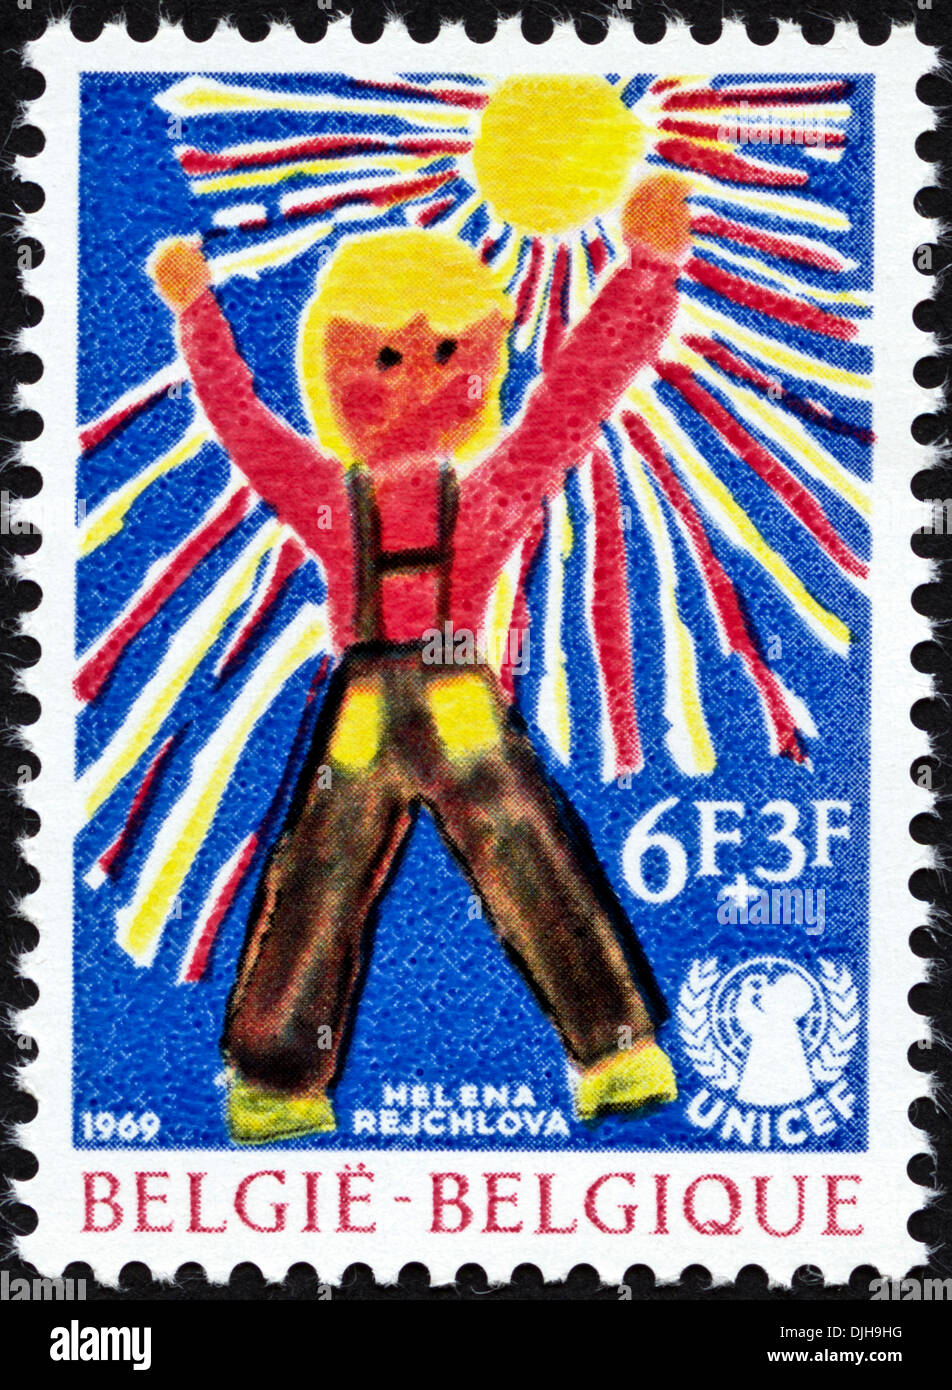 postage stamp Belgium 6F+3F featuring UNICEF children's painting issued 1969 - Stock Image